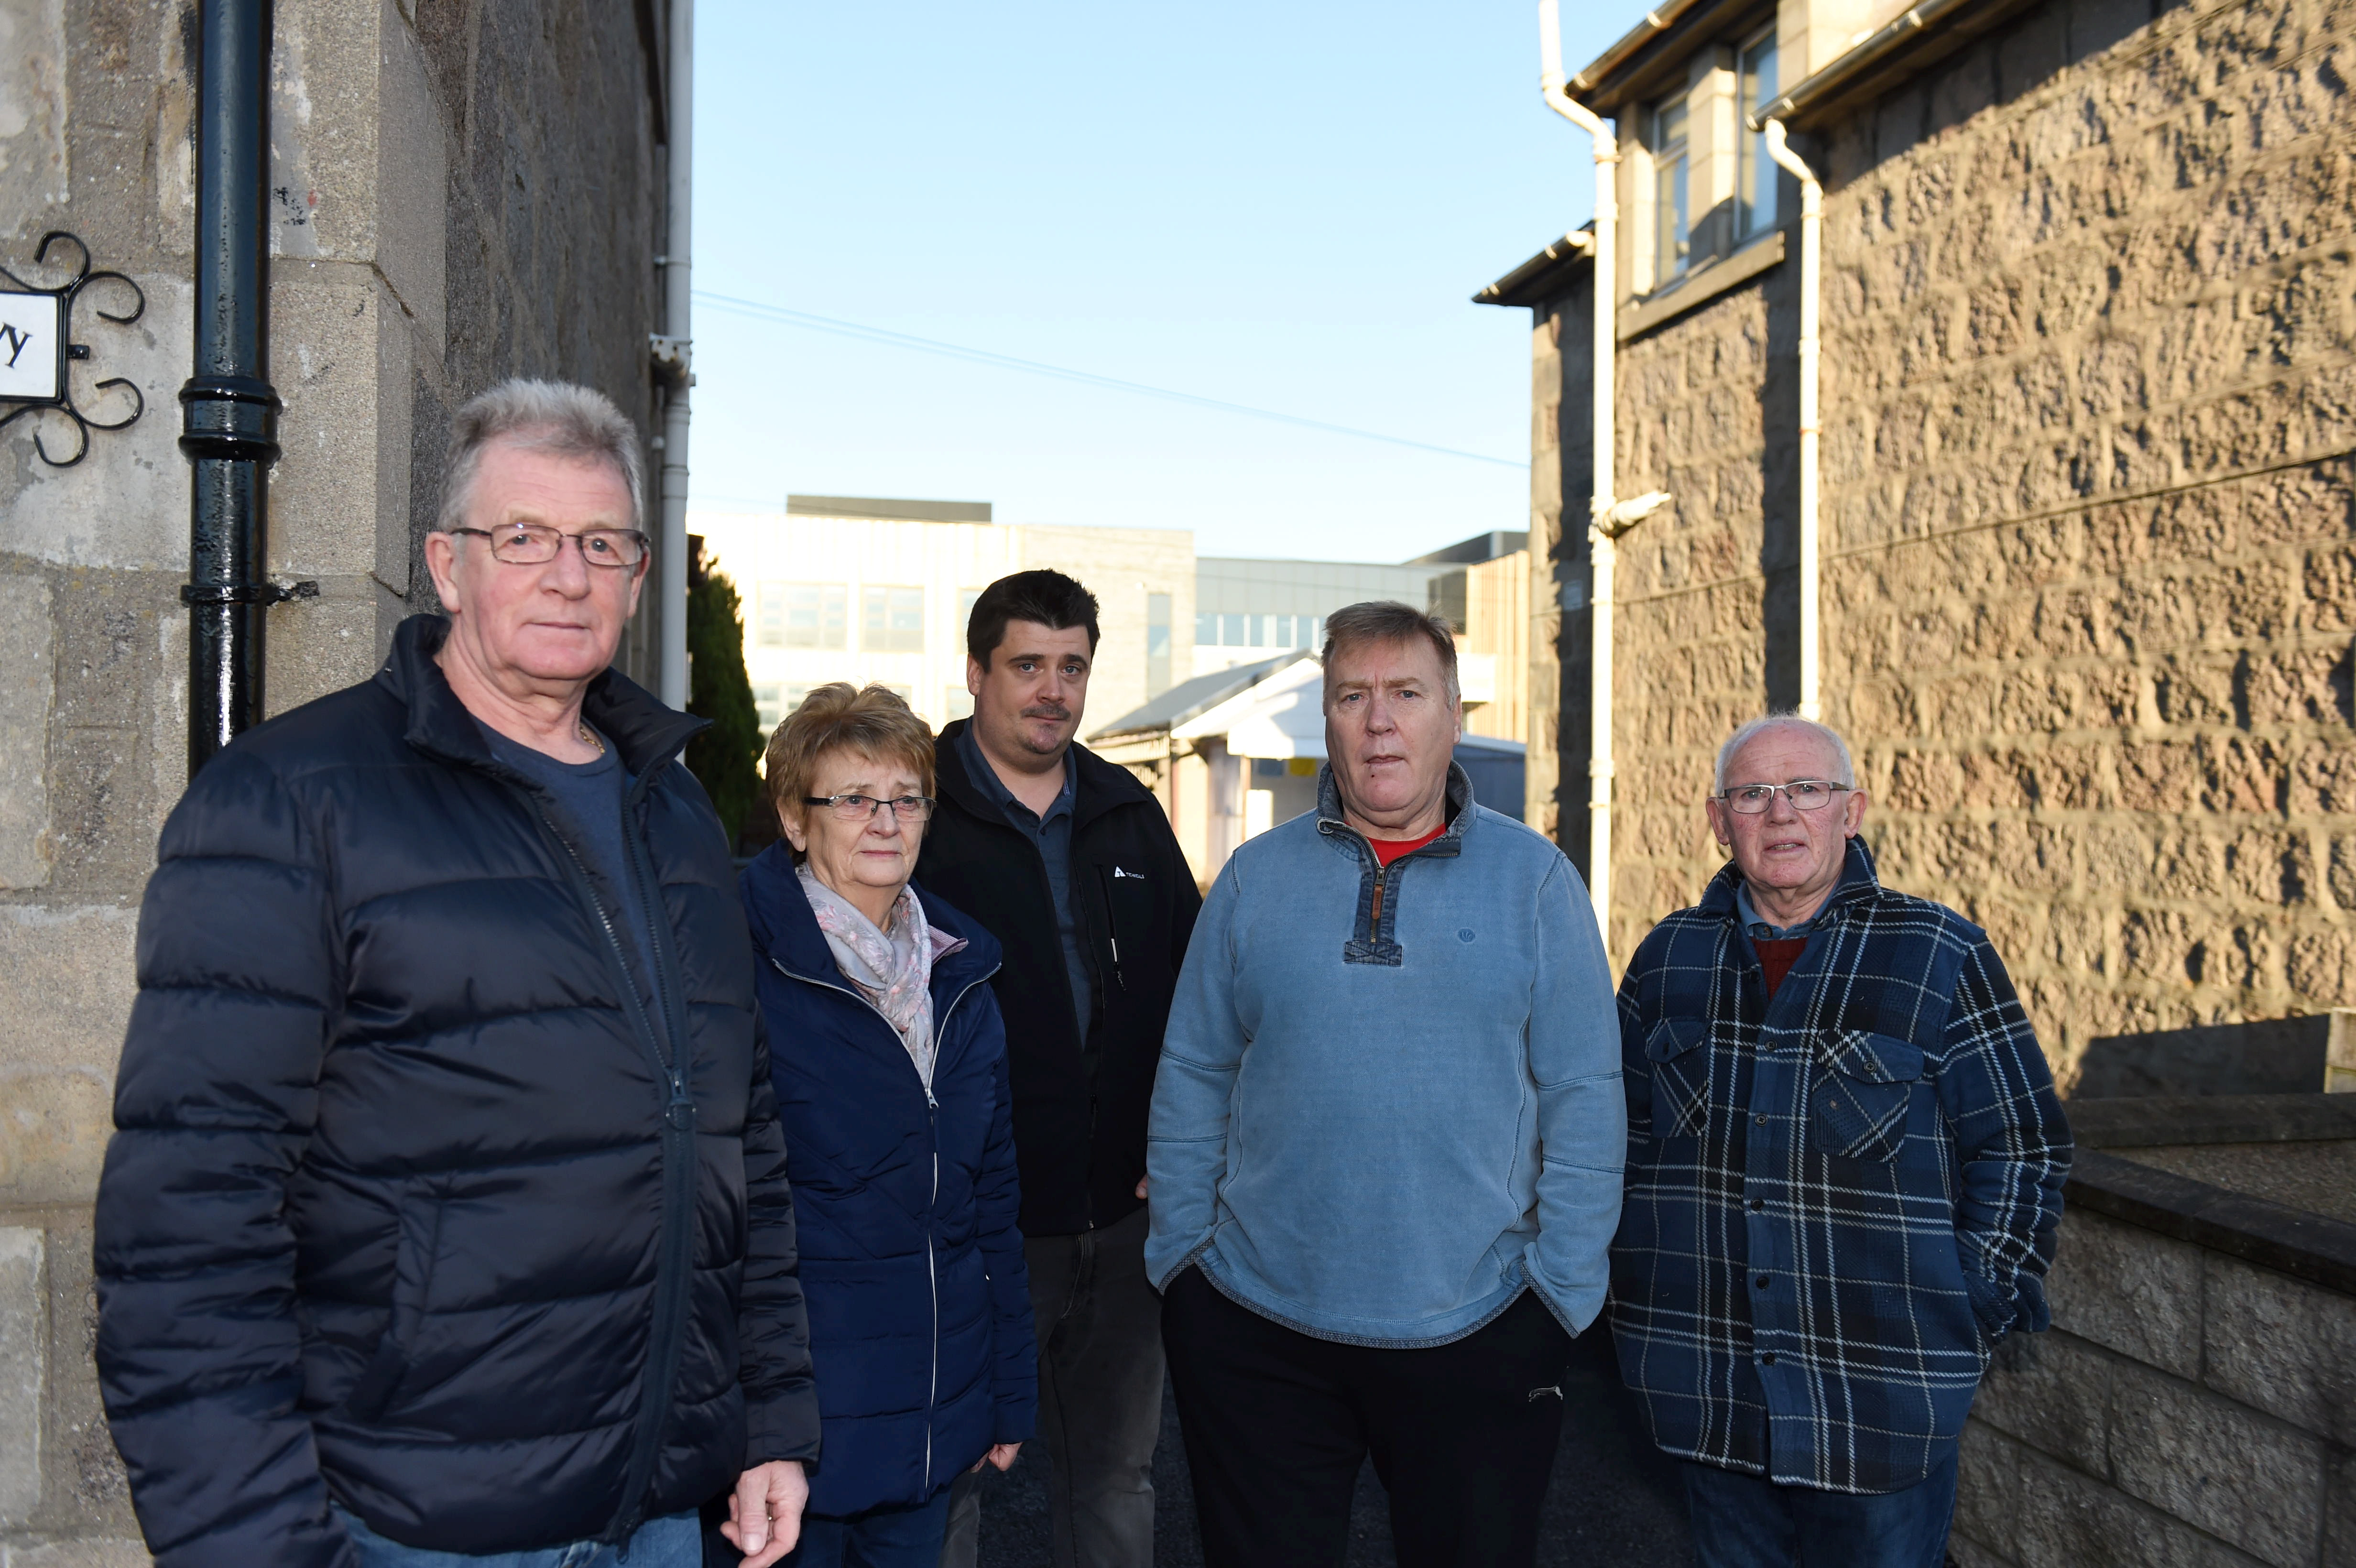 Pictured from left are George Square residents: Coliin Strachen, Edna Ross, Rob Griffith, Dave Cormie and George Ross.  Picture by Paul Glendell